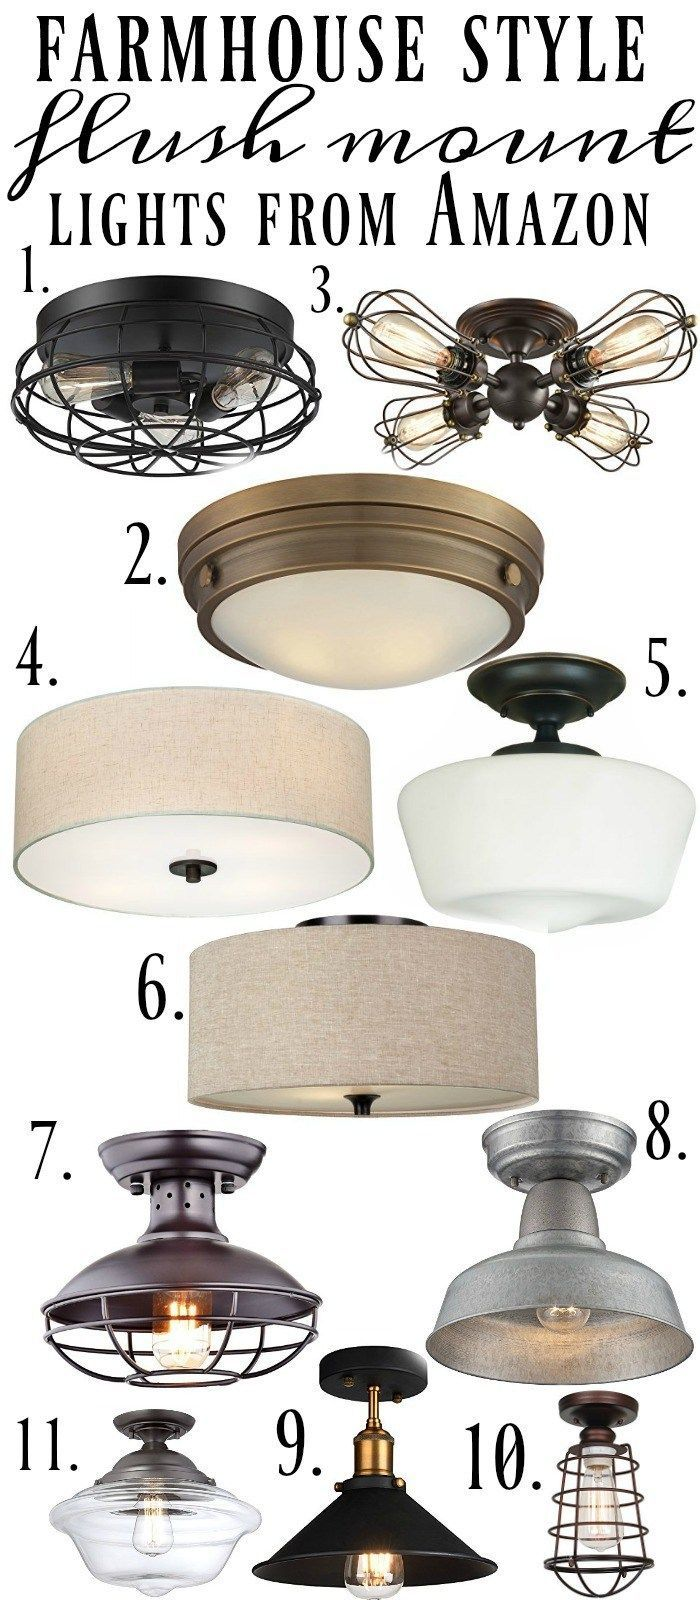 Photo of Wonderful free ideas for country style bathroom lights …